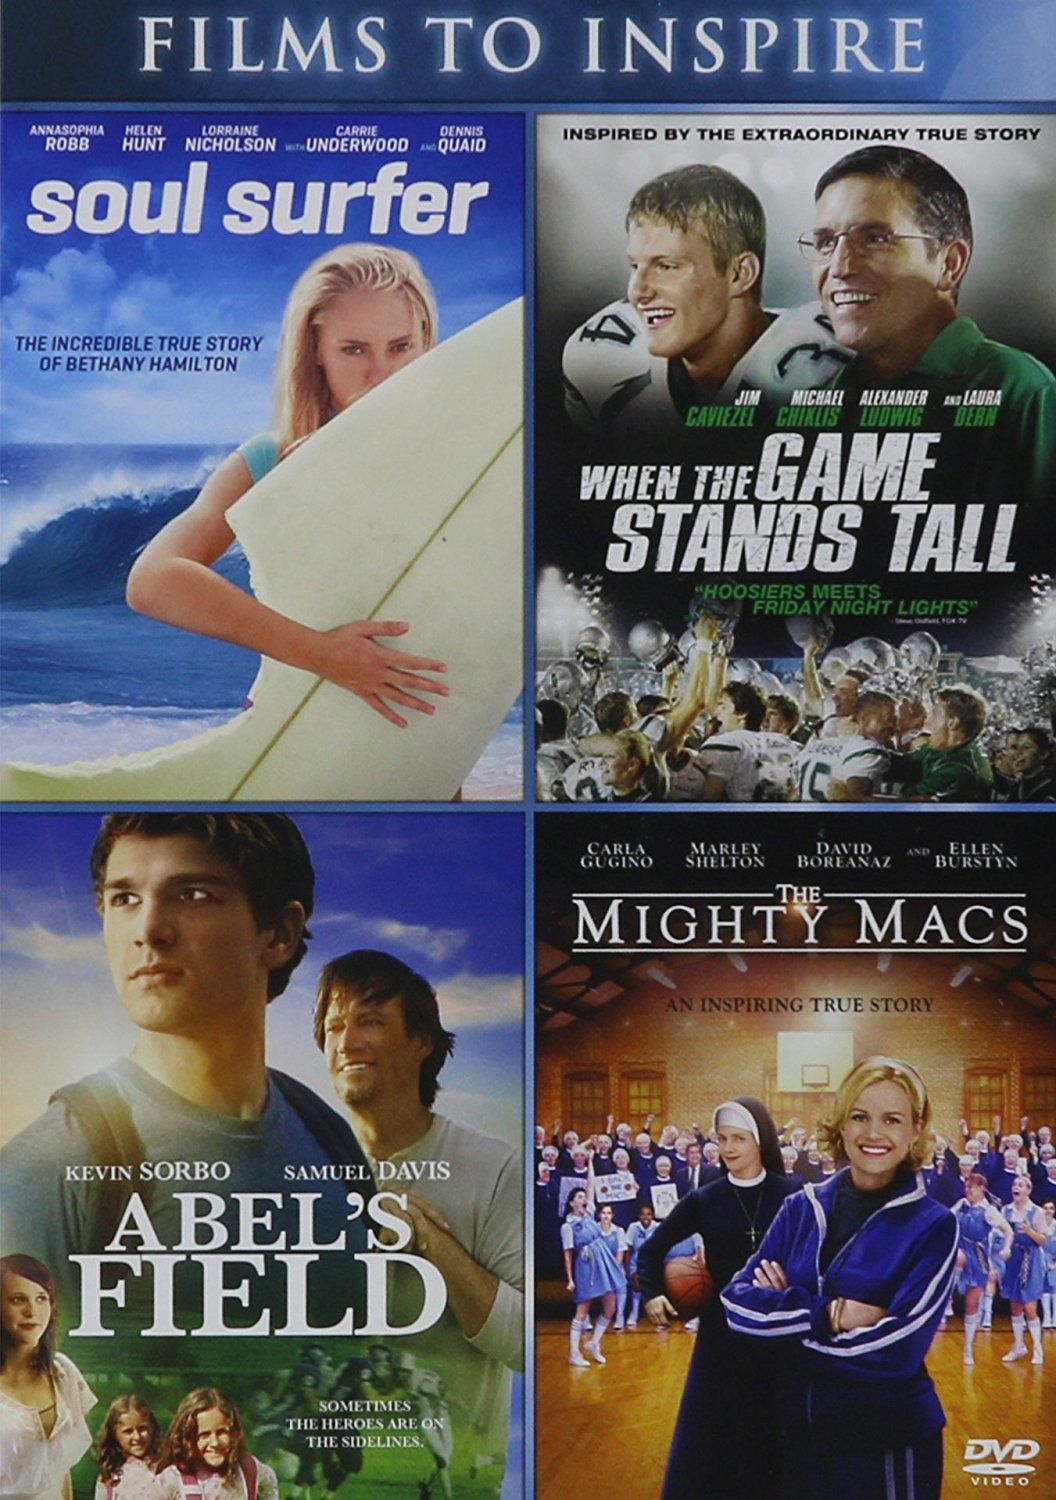 Amazon.com: Abel's Field / Mighty Macs, the - Vol / Soul Surfer / When the Game Stands Tall - Vol - Set: Kevin Sorbo: Movies & TV